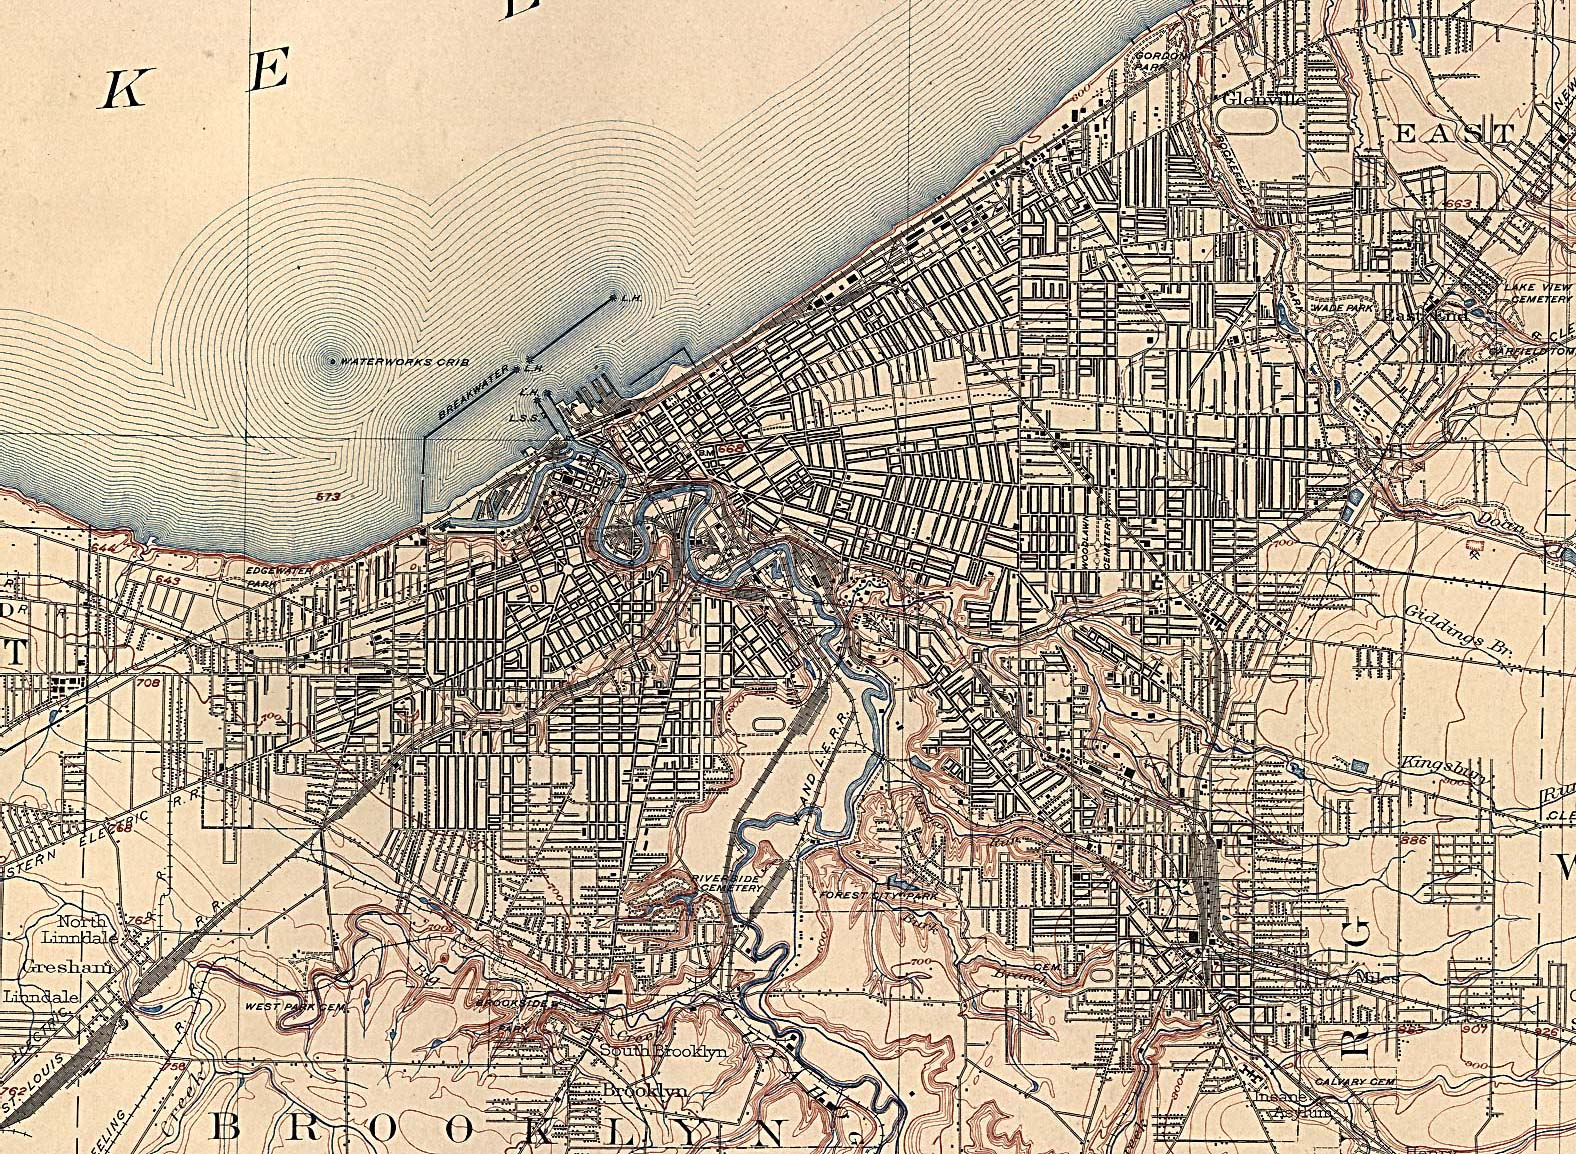 Historical Maps of U.S Cities. Cleveland, Ohio 1904 U.S. Geological Survey (893K)